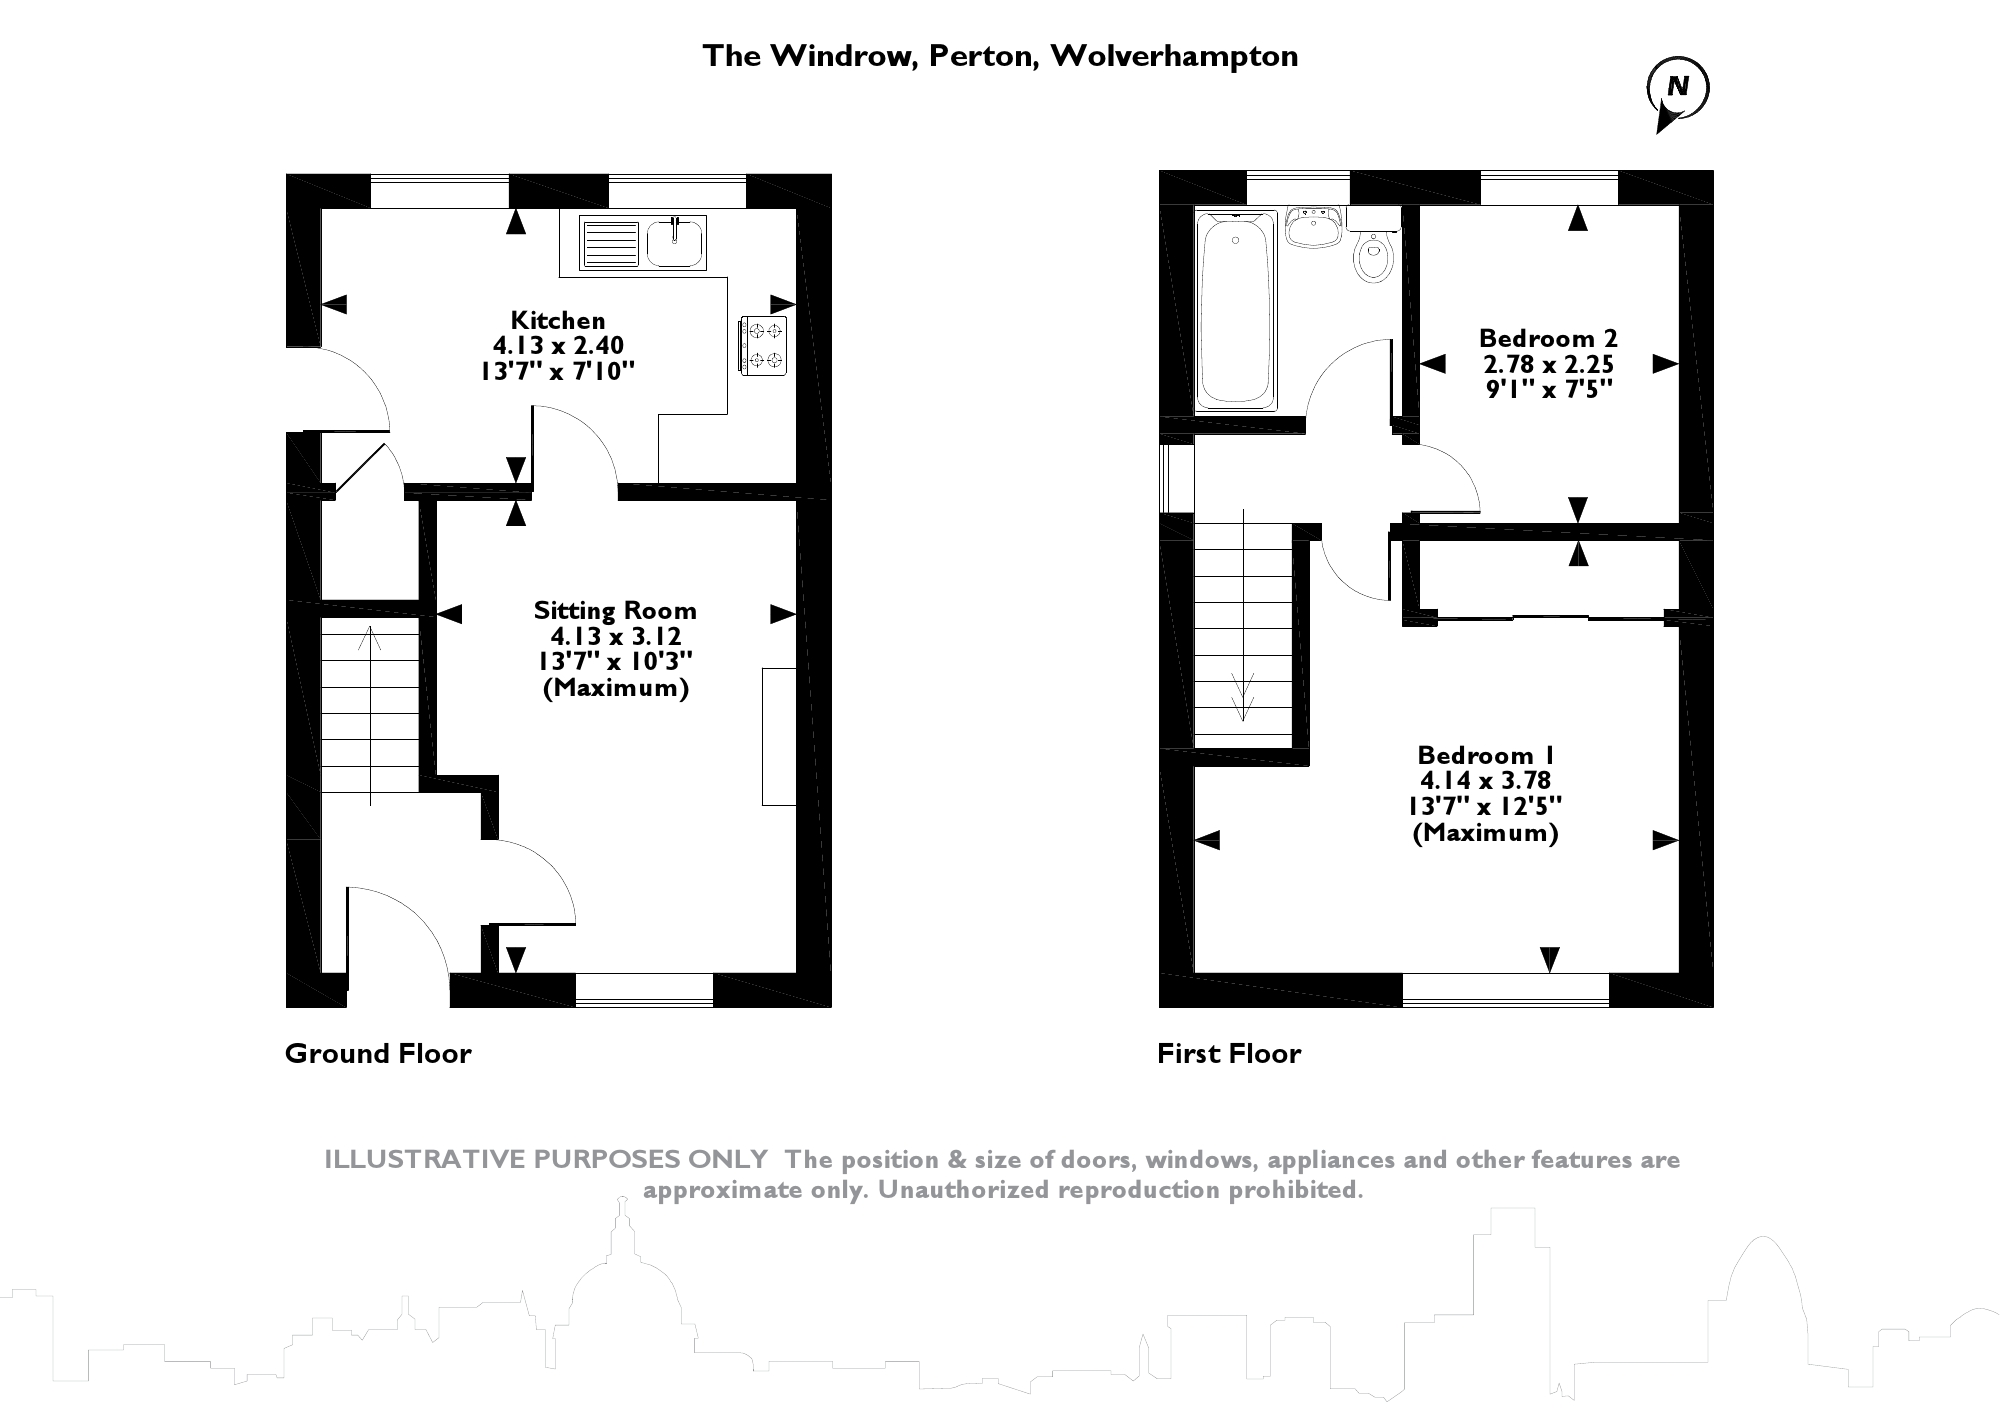 The Windrow, Perton, Wolverhampton floor plan